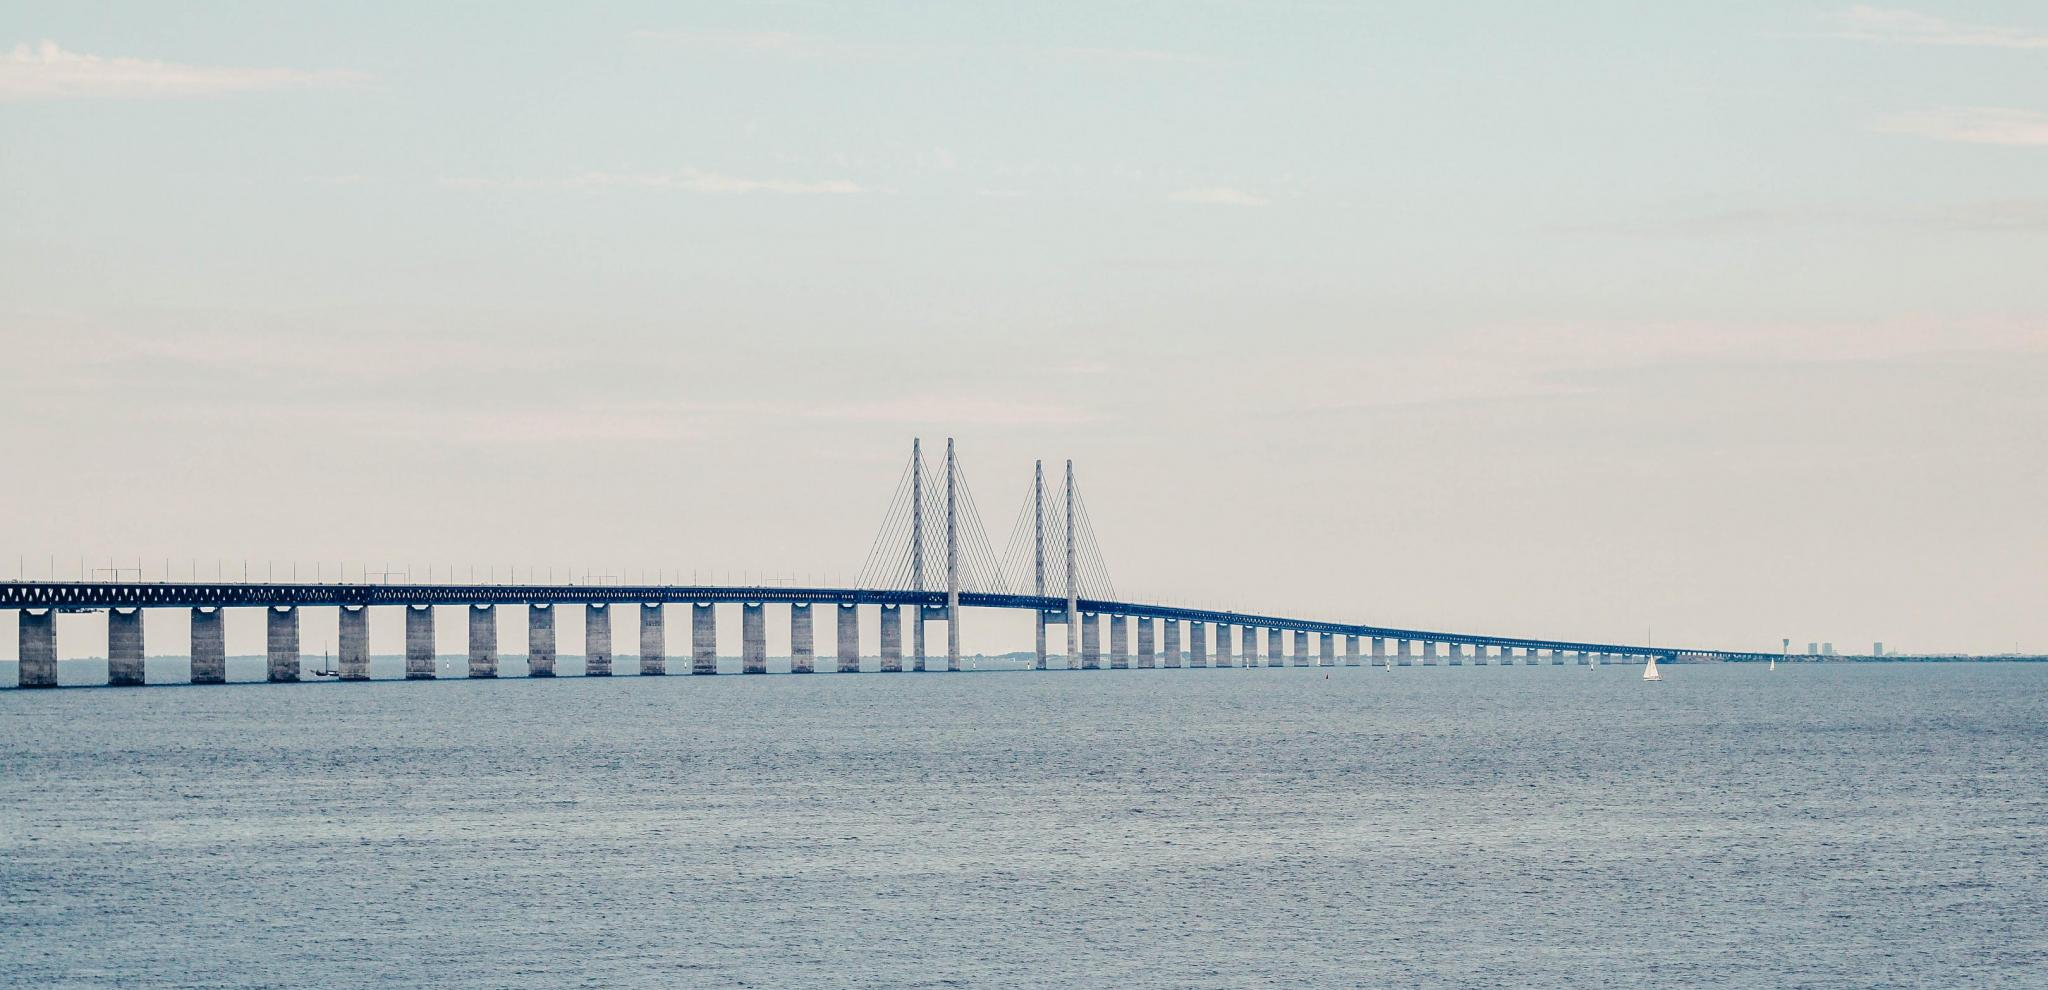 The Öresund bridge with surrounding sea